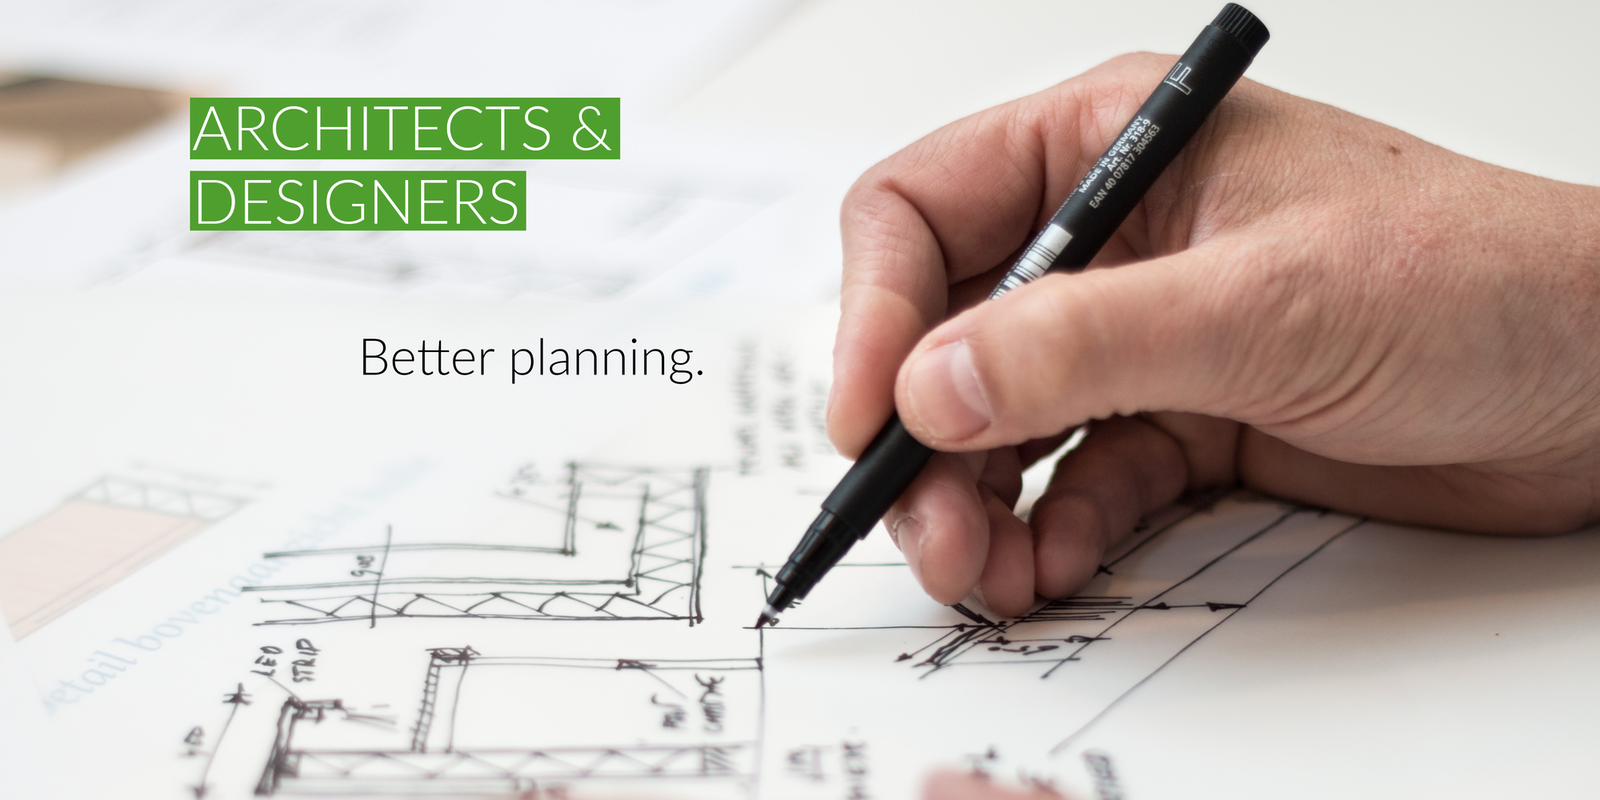 Architects and designers are able to plan better using DryTile.